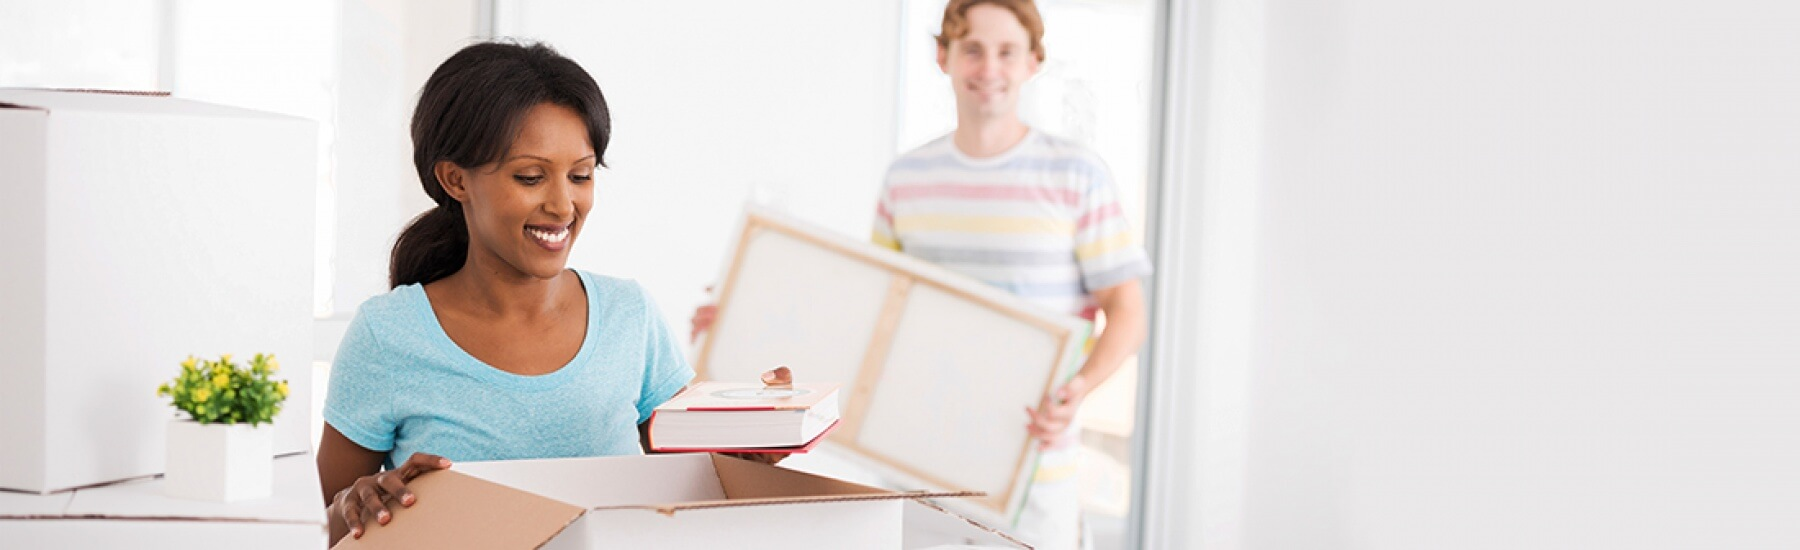 Stock Photo - woman and man unpacking boxes.